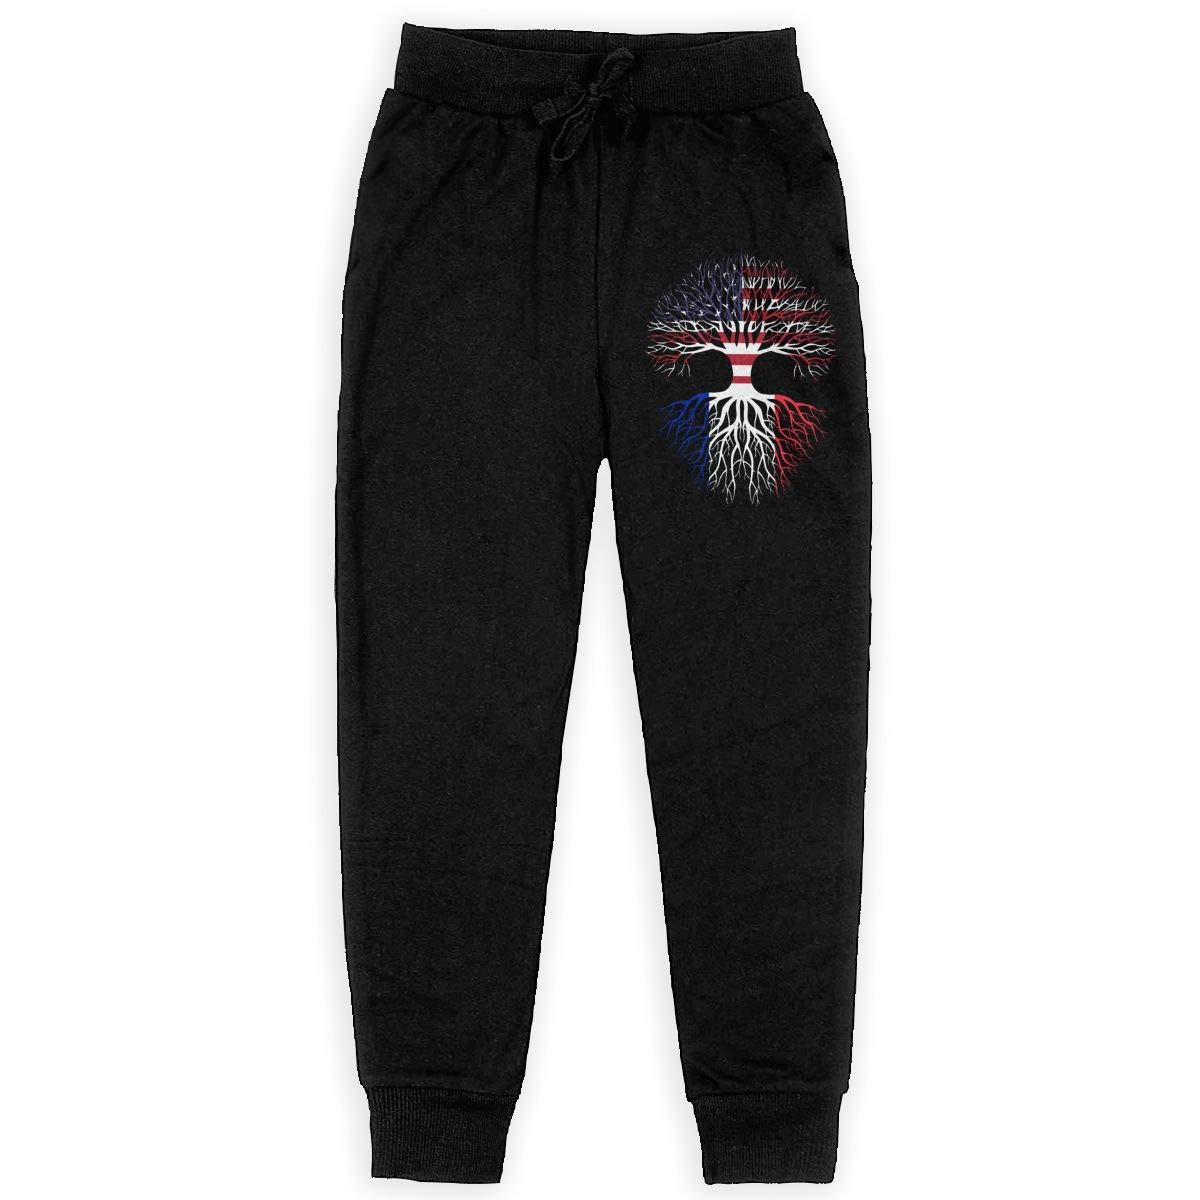 WYZVK22 American Grown France Roots Soft//Cozy Sweatpants Girls Active Basic Jogger Fleece Pants for Teen Boy